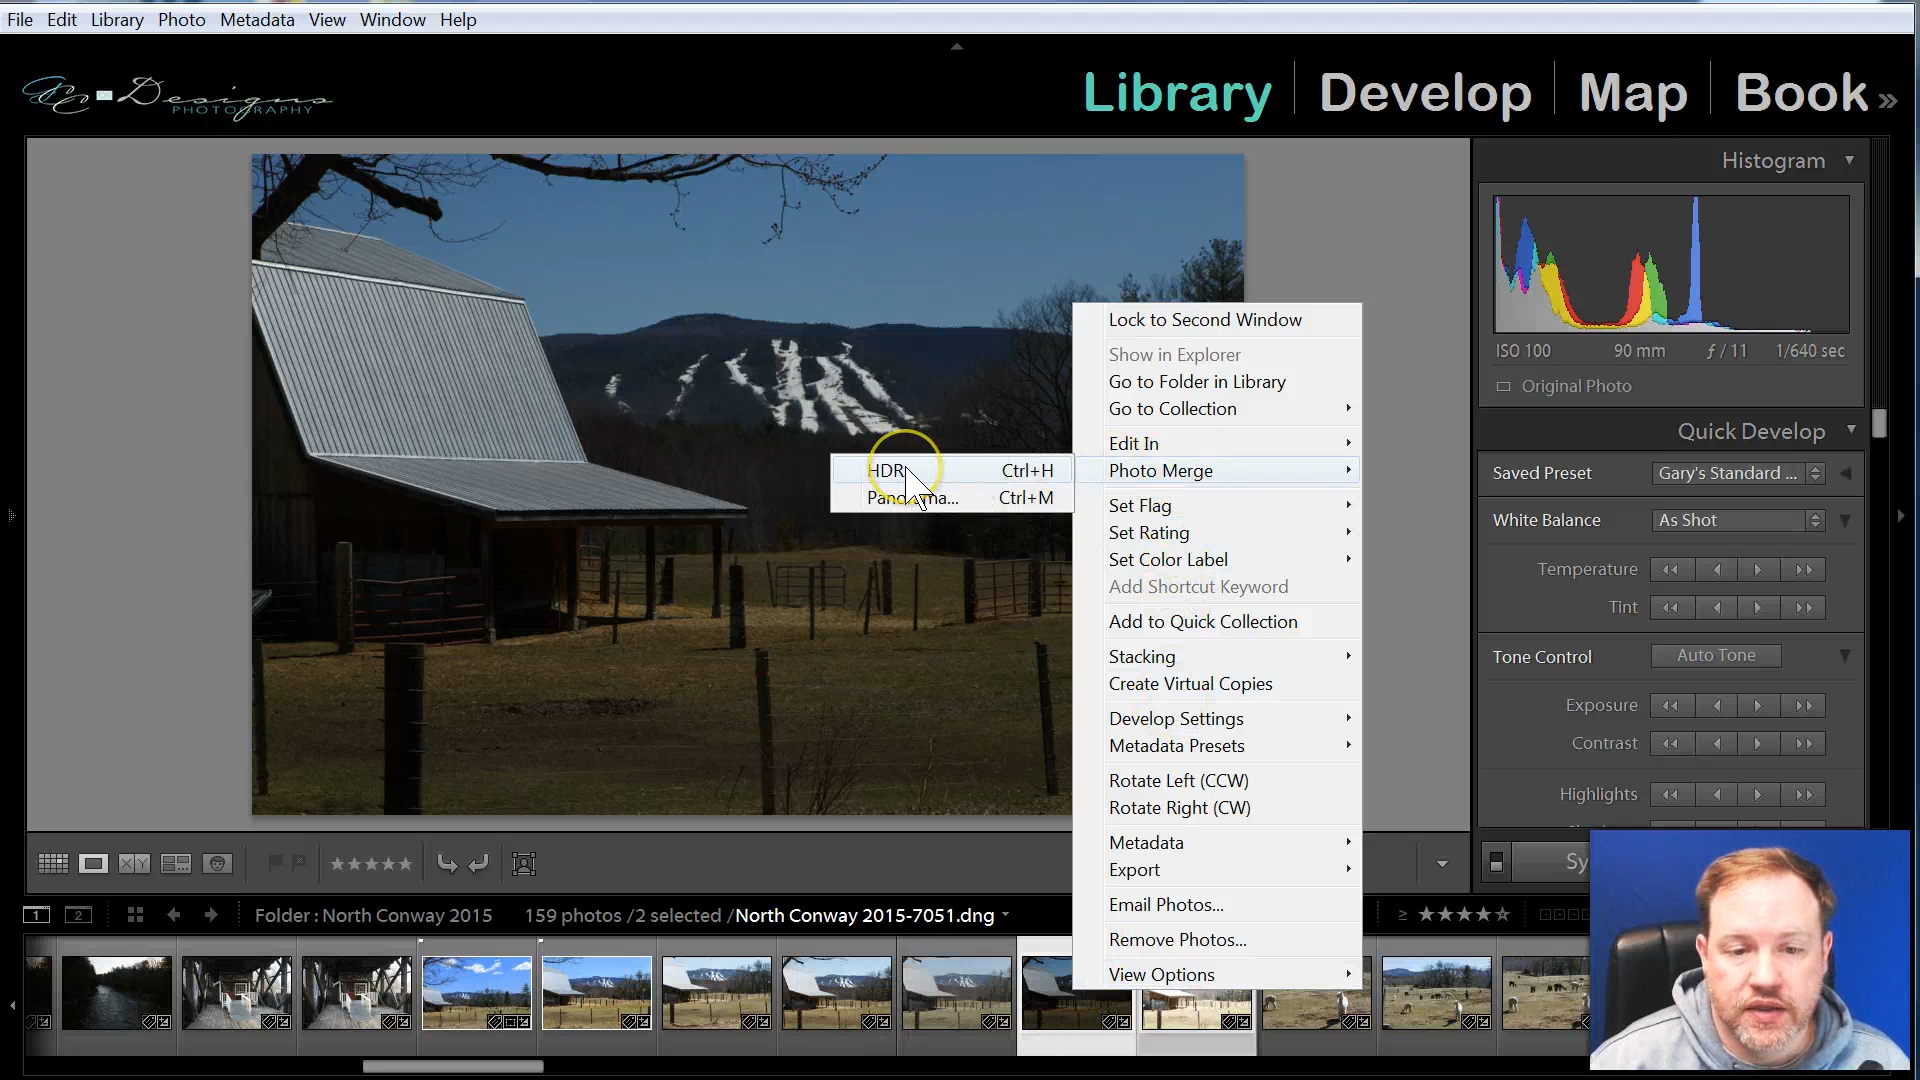 Highlight the images needed for the HDR. Right click on them (Ctrl+H) >Photo Merge>HDR